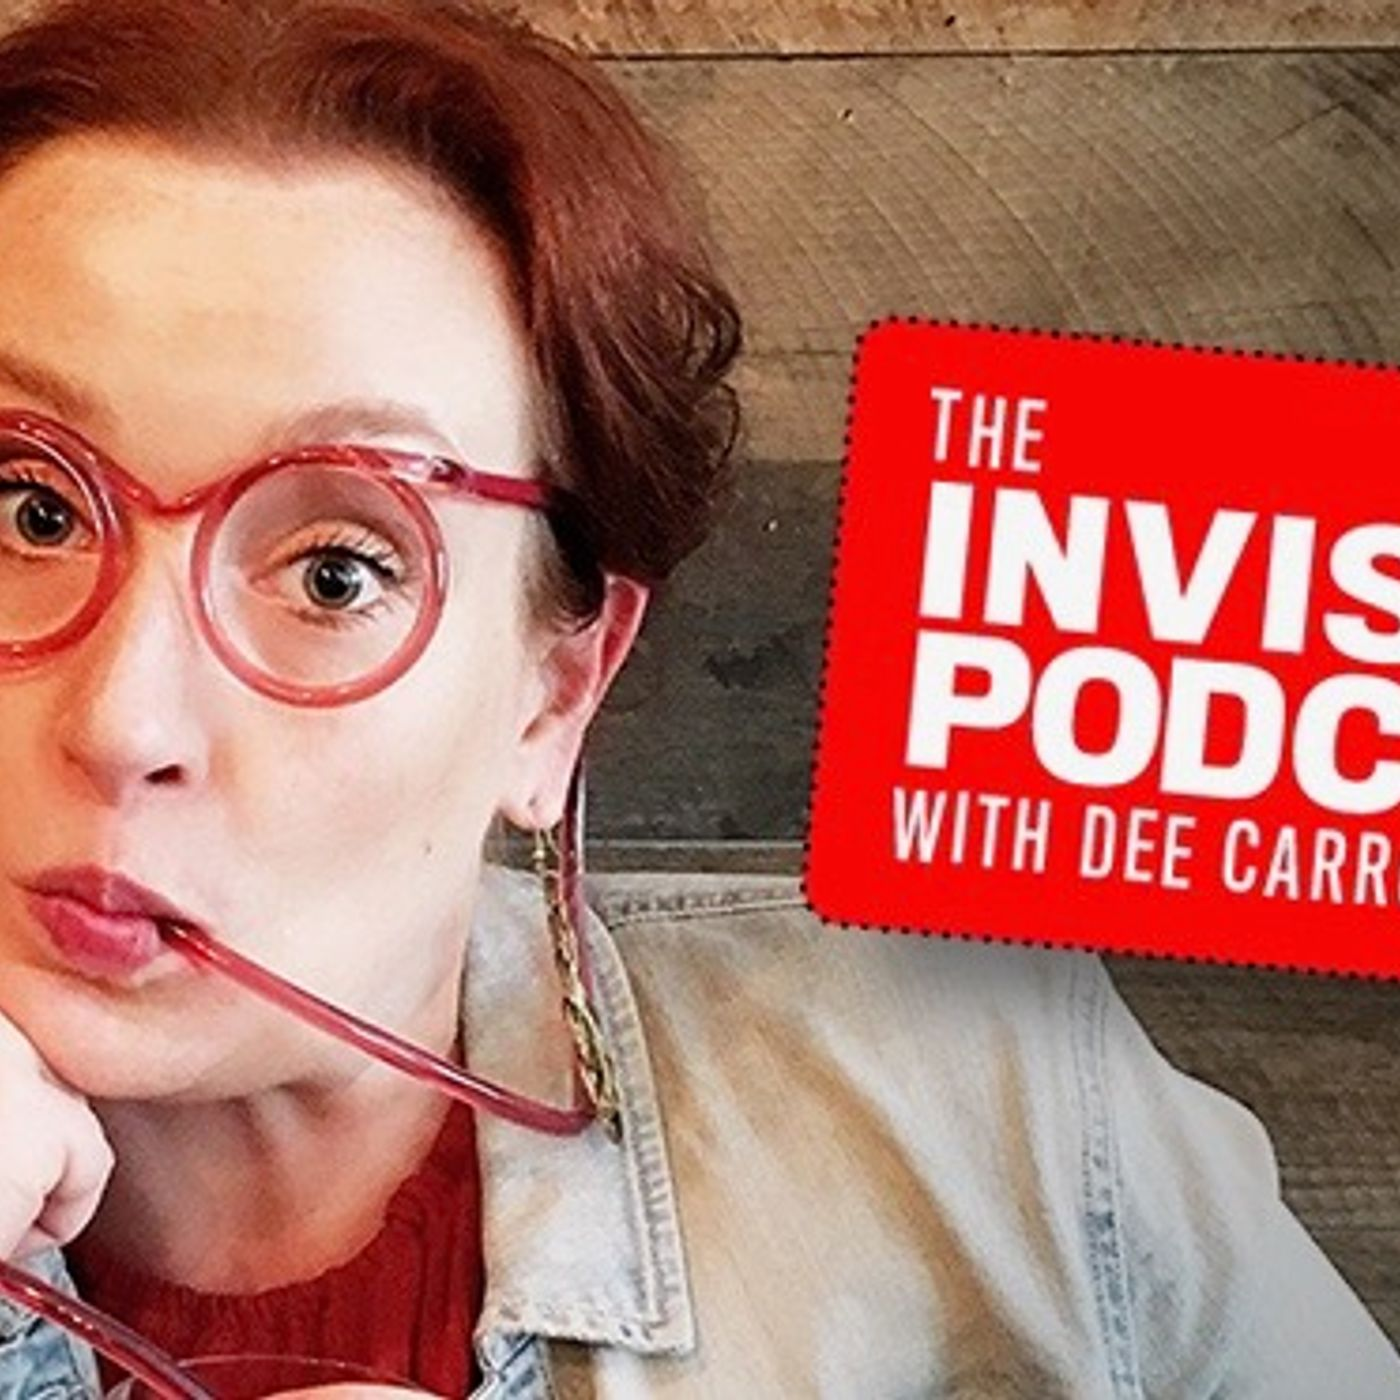 INVISION Podcast with Dee Carroll (Episode 9): Eclectic Eye is America's Finest Optical Retailer